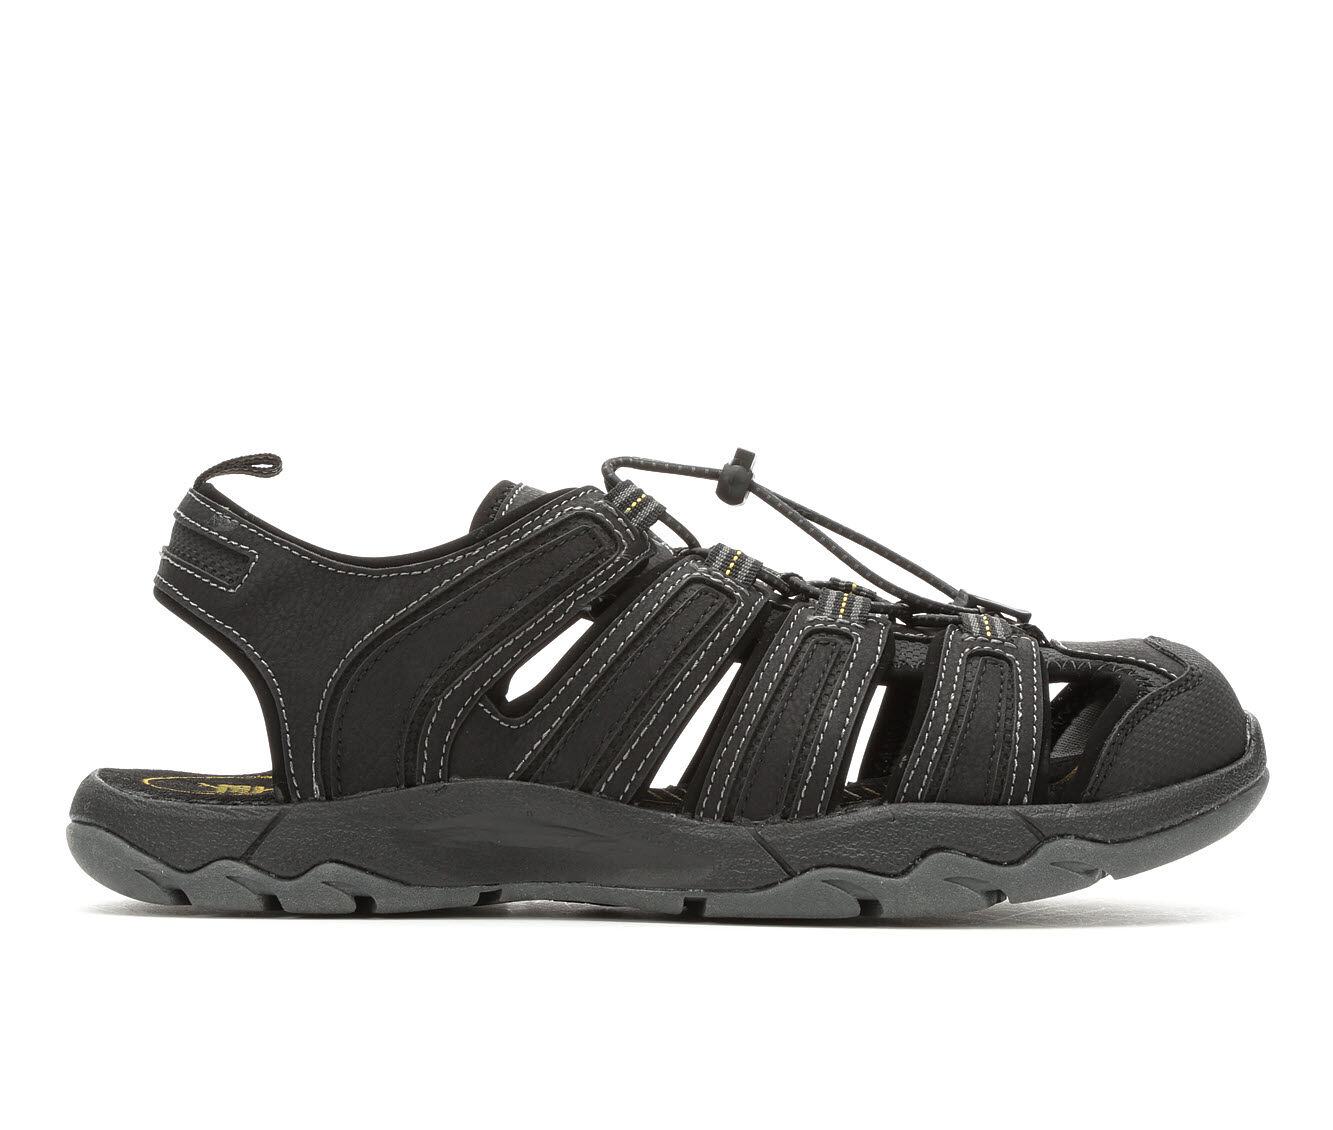 Price Reduced Men's Gotcha Cedar Hiking Sandals Black